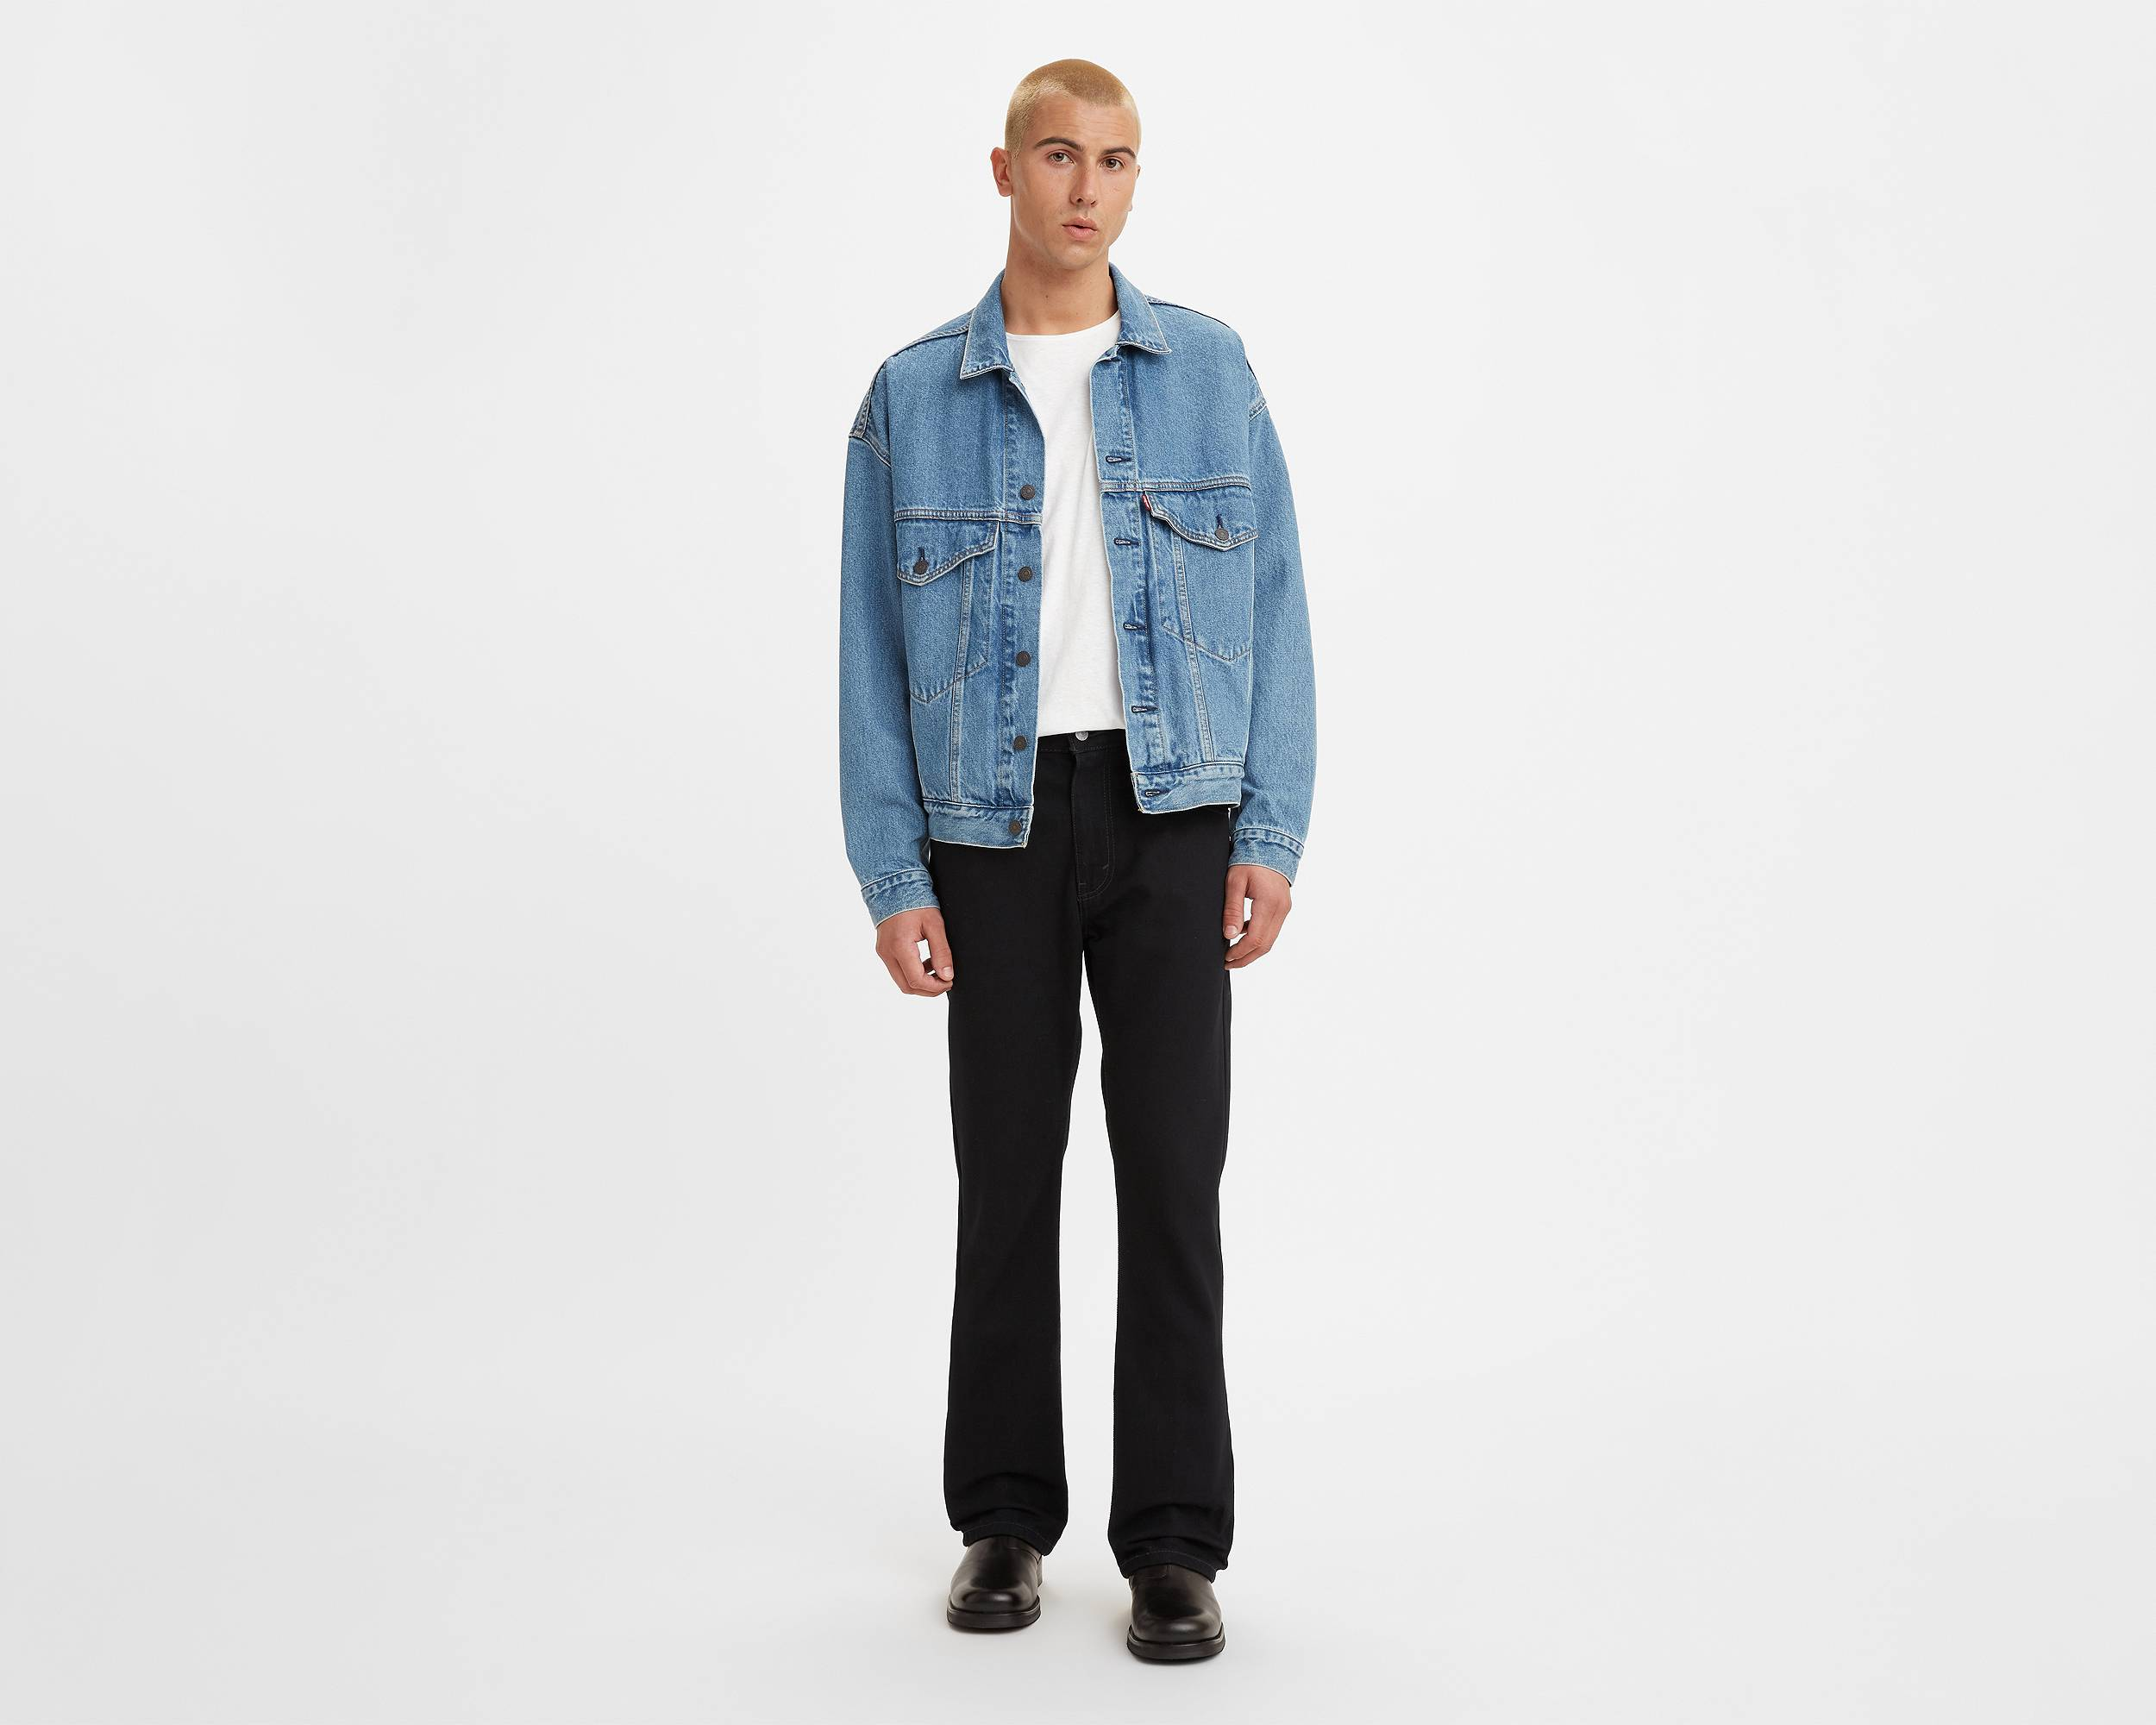 517™ Boot Cut Jeans | Black |Levi's® United States (US)